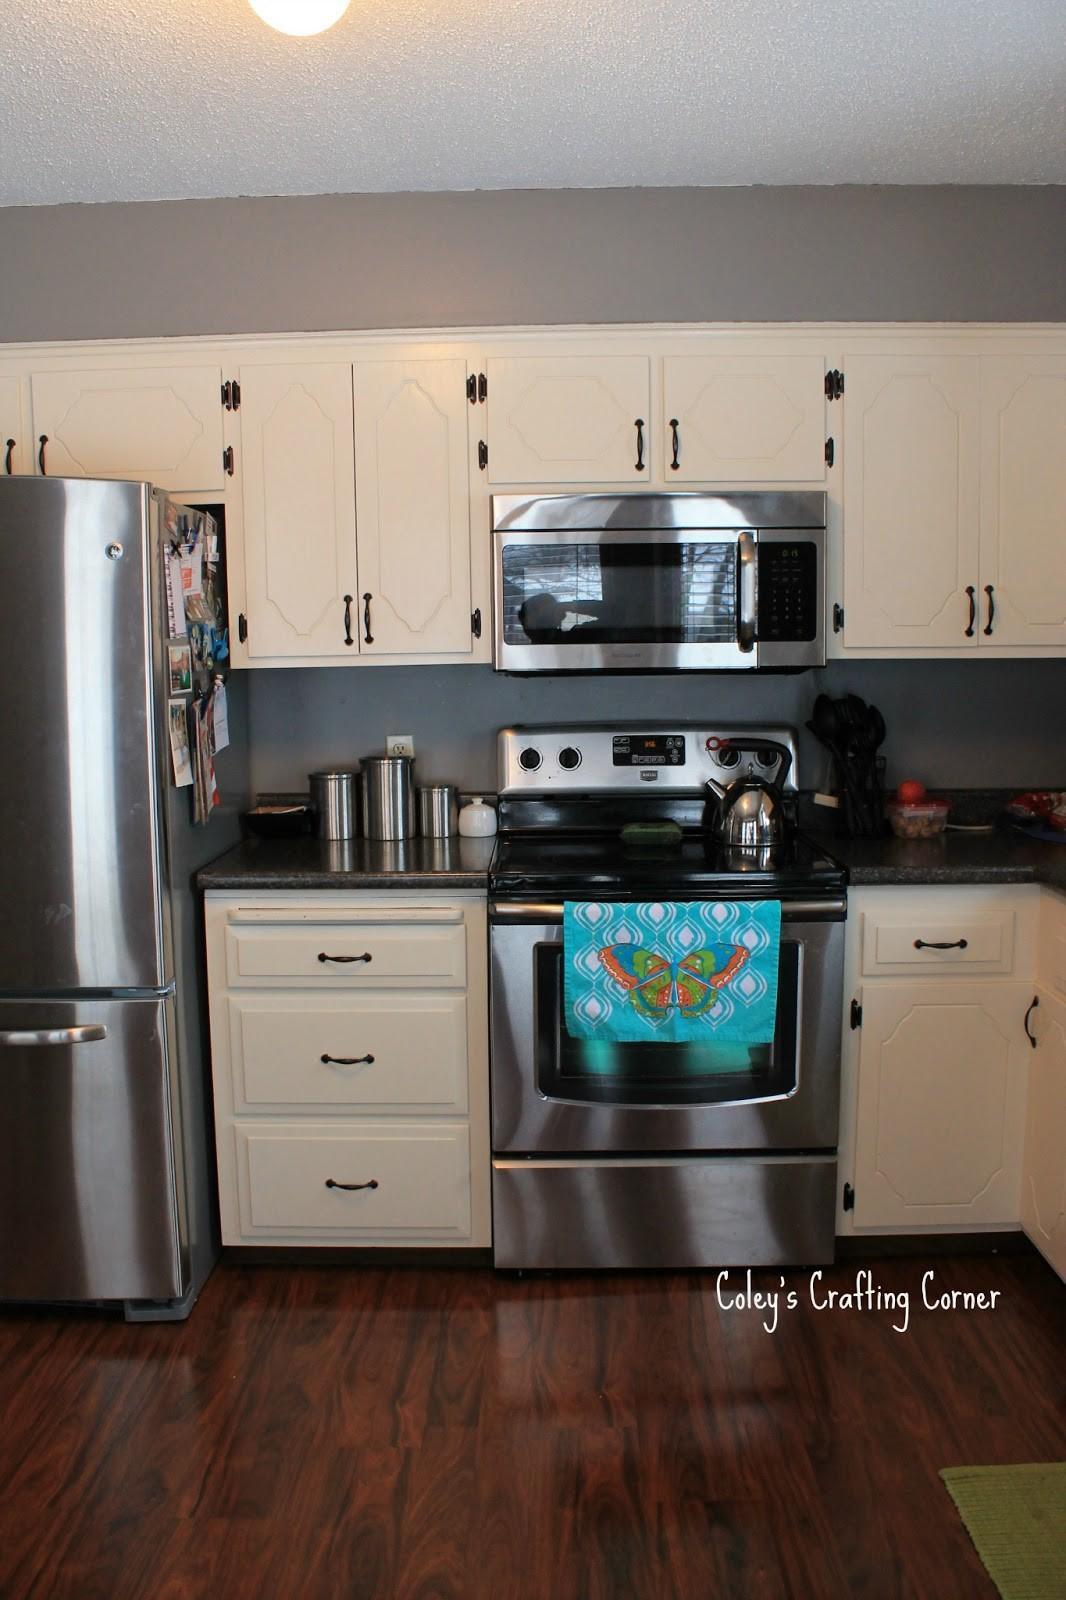 Coley Diy Crafting Corner Kitchen Upgrade